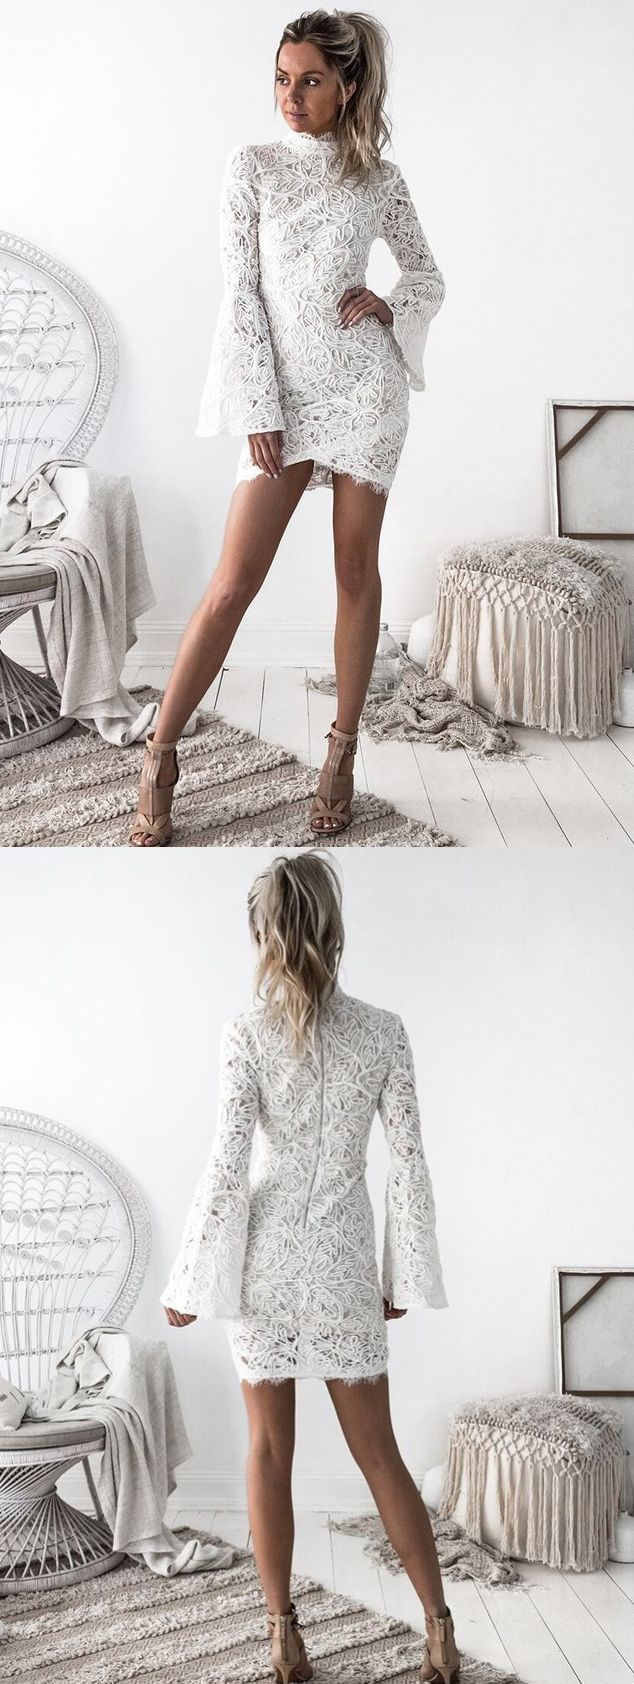 chic long sleeves white lace homecoming dresses, simple tight semi formal dresses, short white bodycon prom dresses.